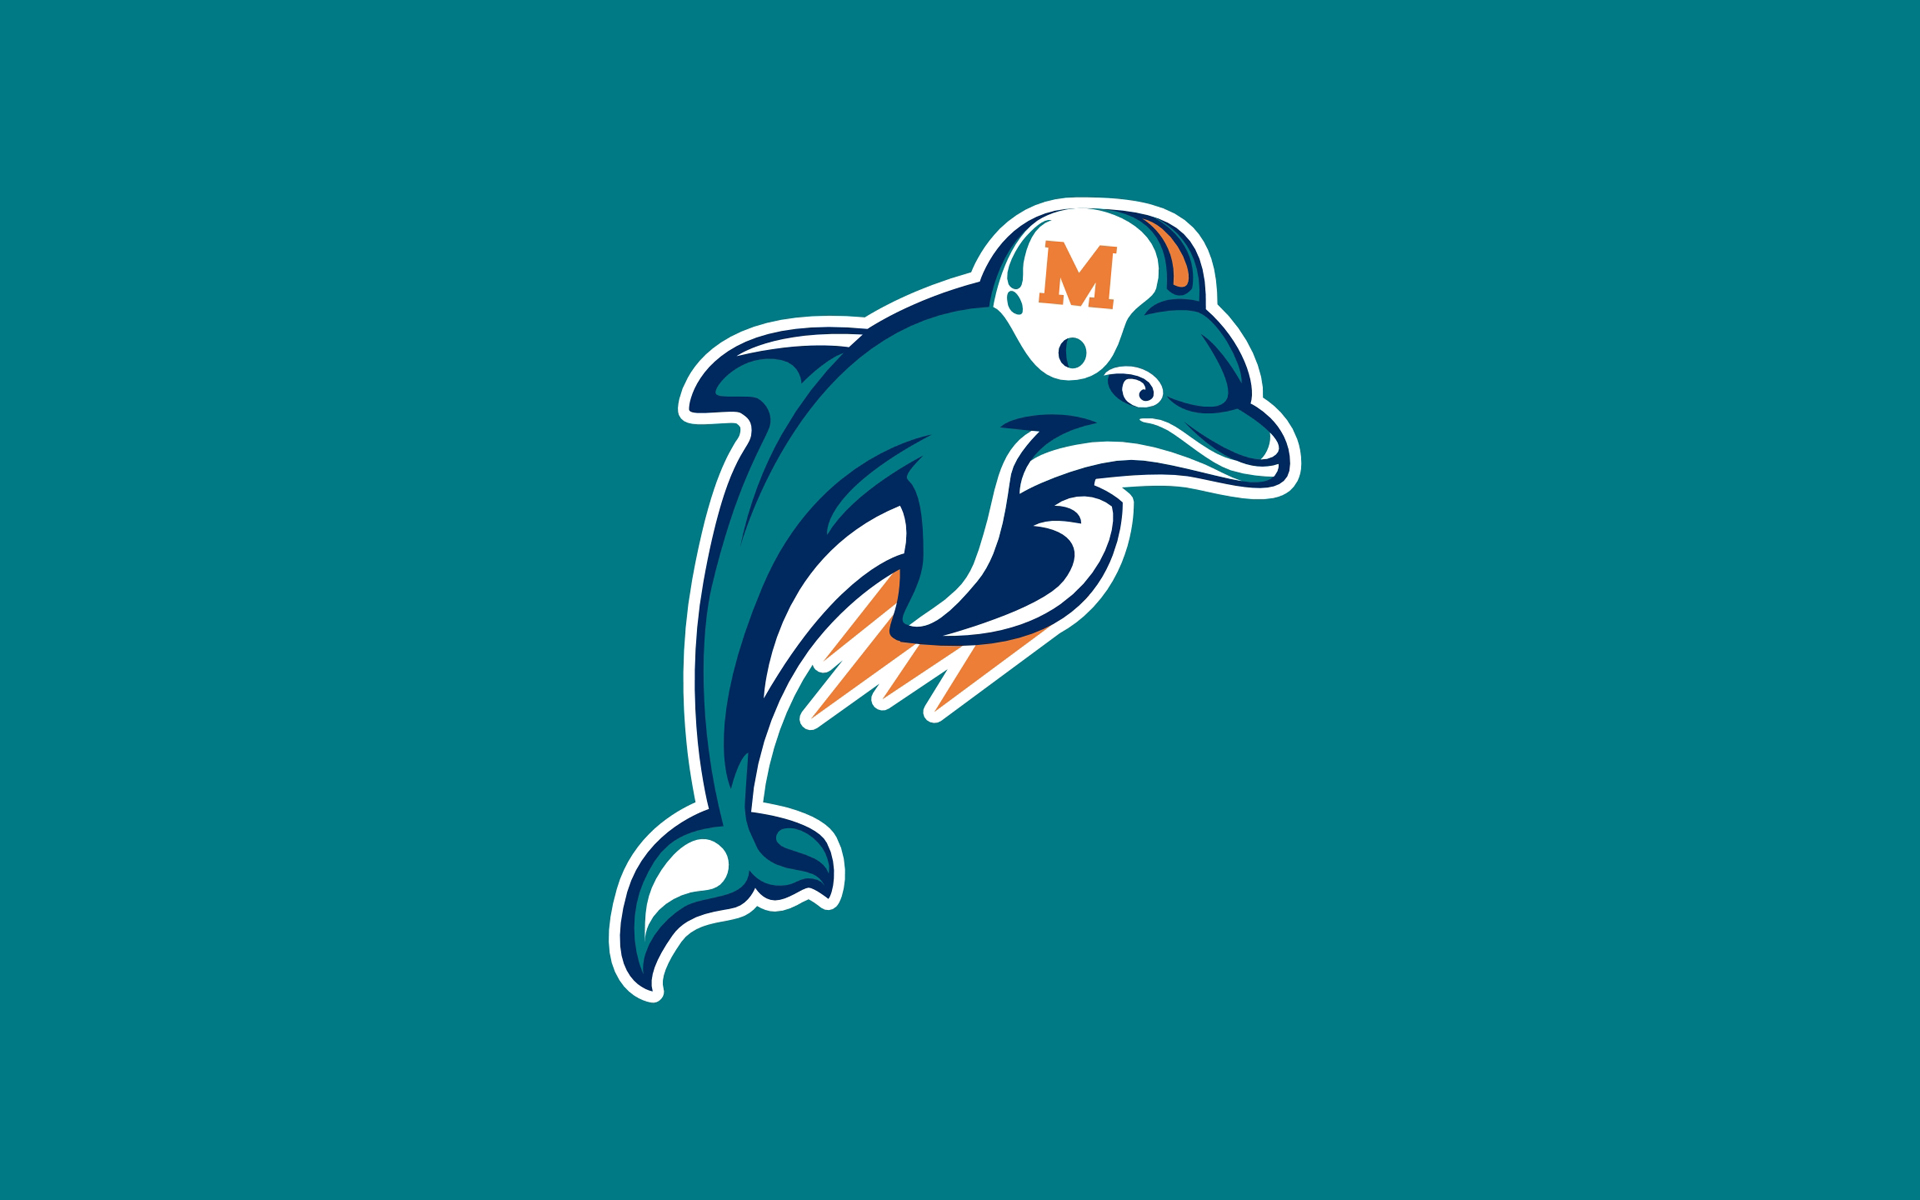 1920x1200 - Miami Dolphins Wallpapers 6